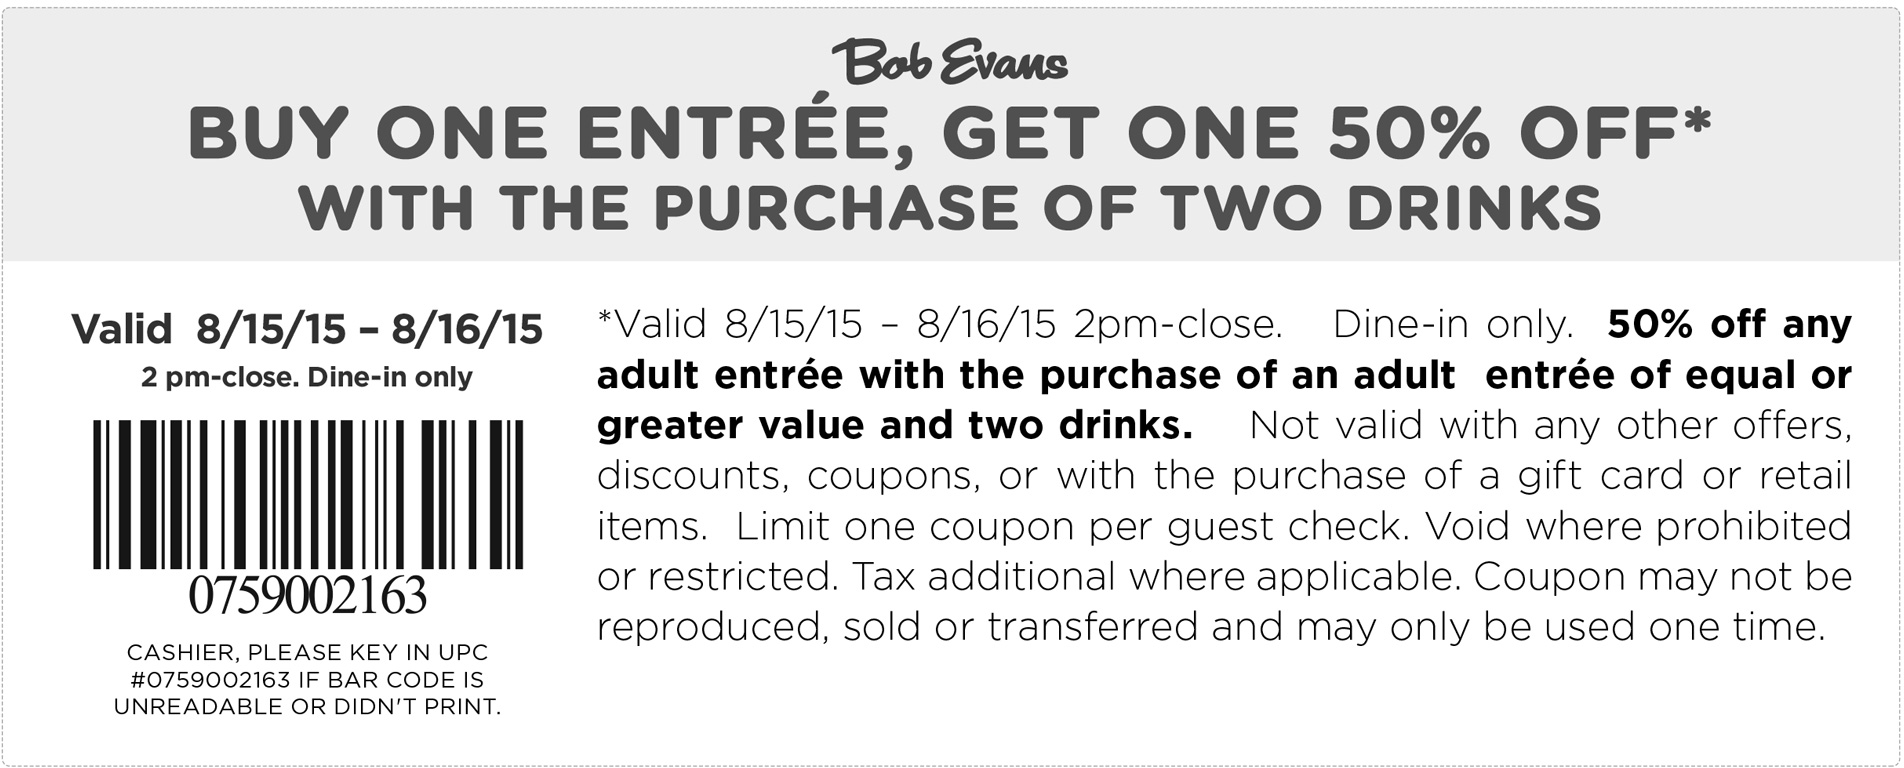 Bob Evans Coupon January 2019 Second dinner 50% off today at Bob Evans